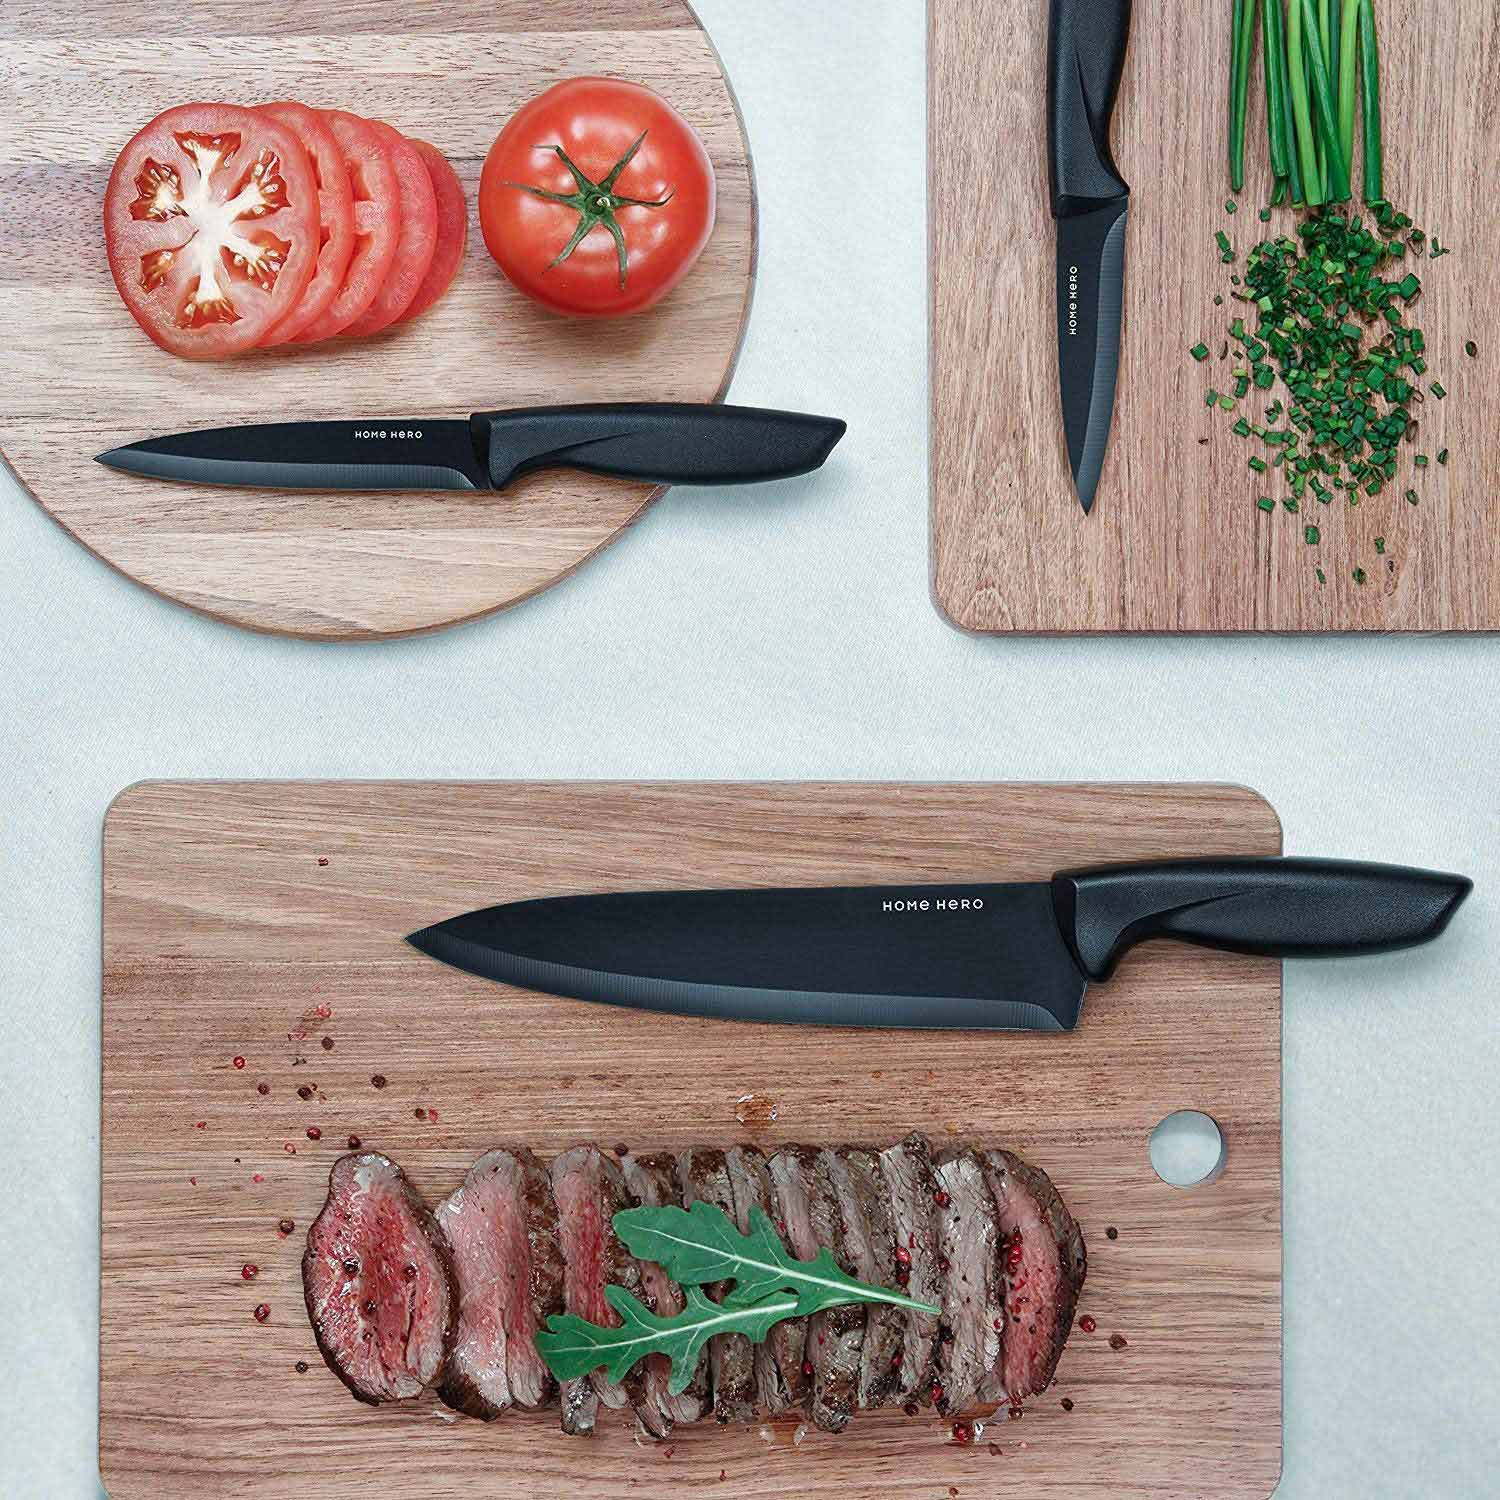 Cutting boards with food and knives